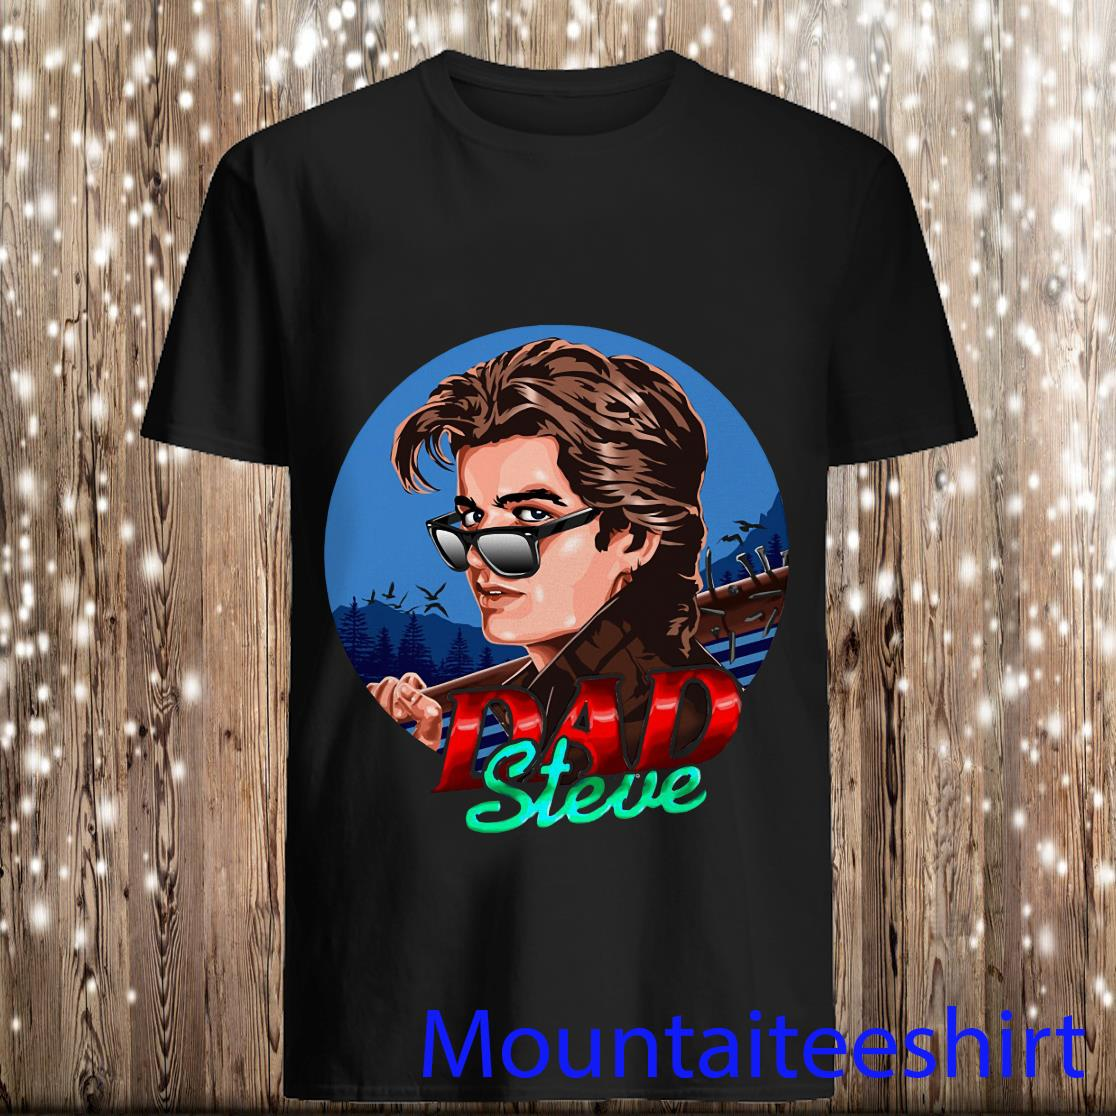 Dad Steve Stranger Things Season 3 Shirt